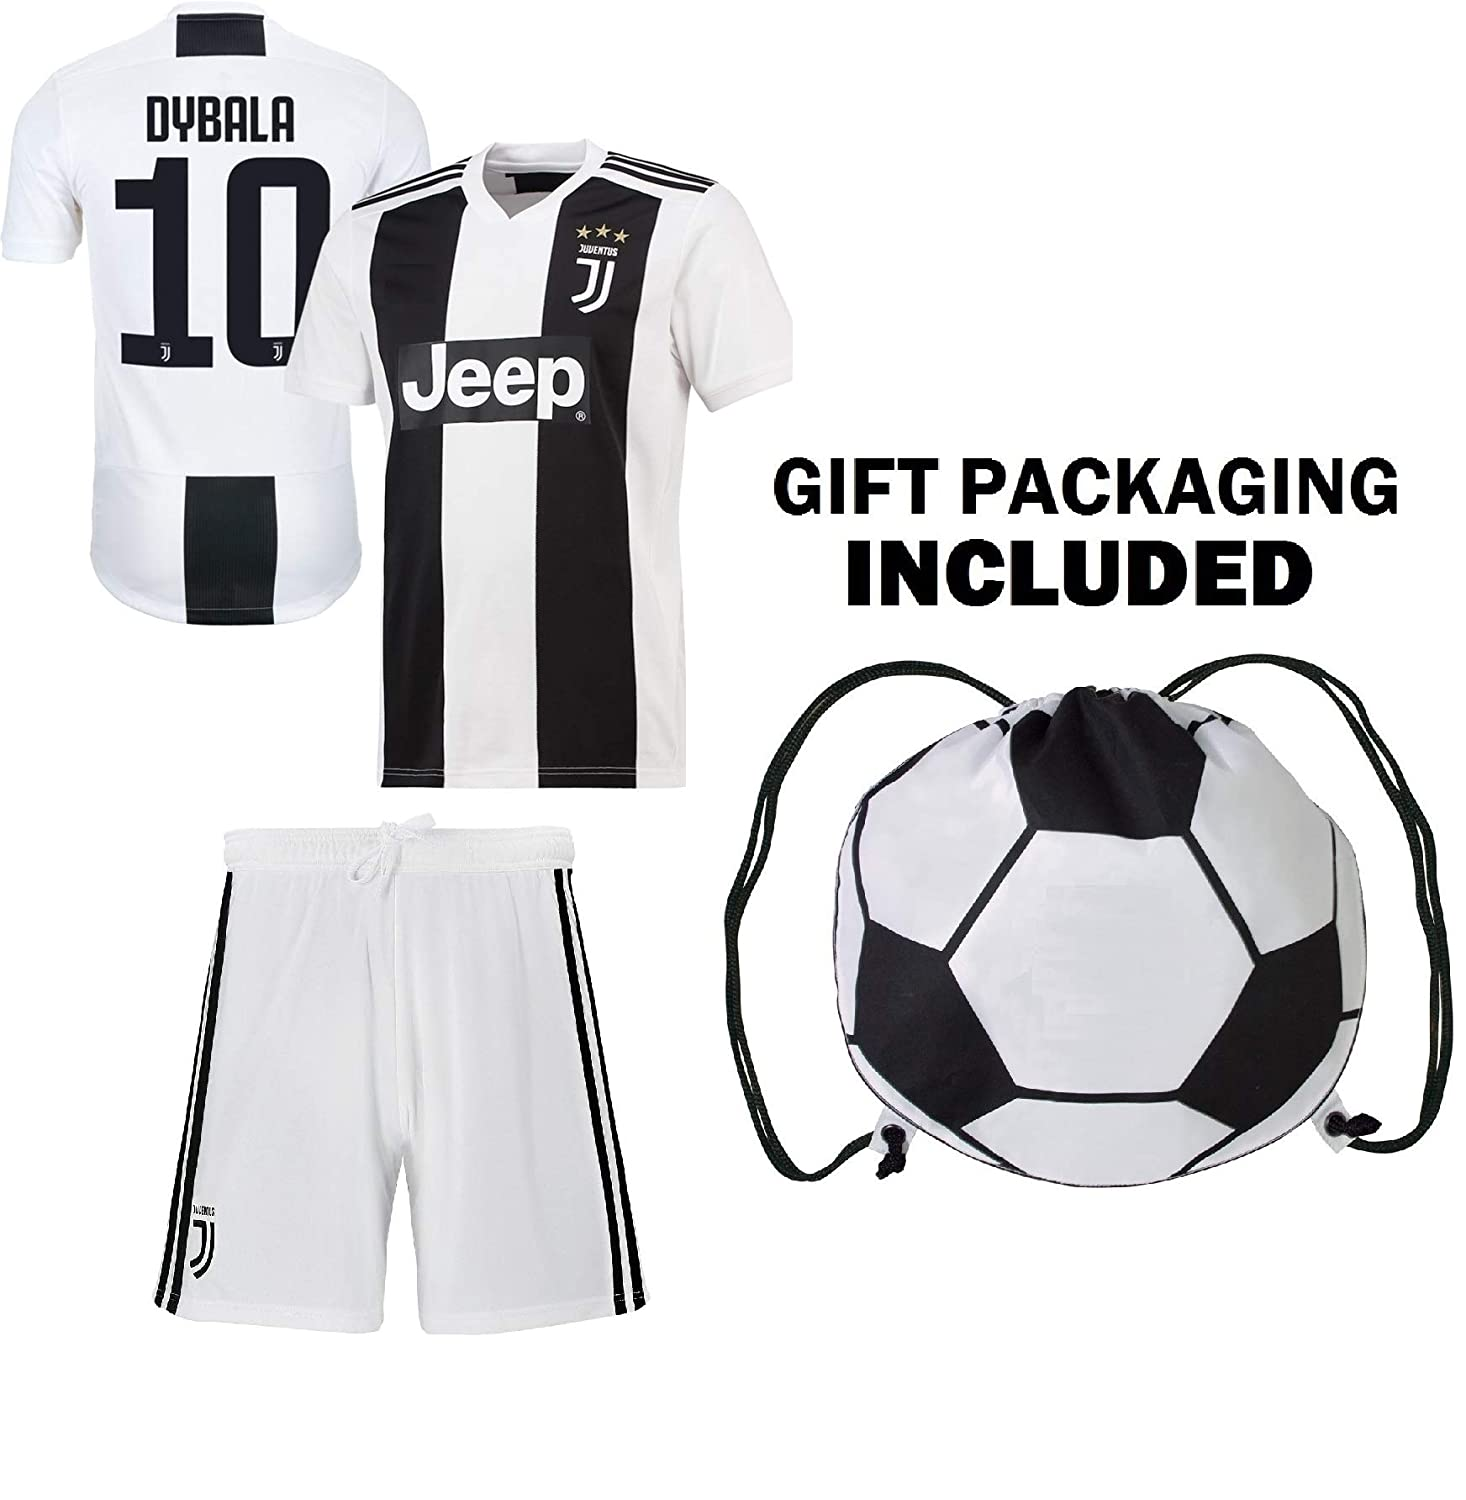 info for 5d5ca fc16f Dybala Juventus Home Youth Soccer Jersey & Shorts & Kit Bag Great Gift for  Kids Boys Girls Football Jersey Juve Dybala #10